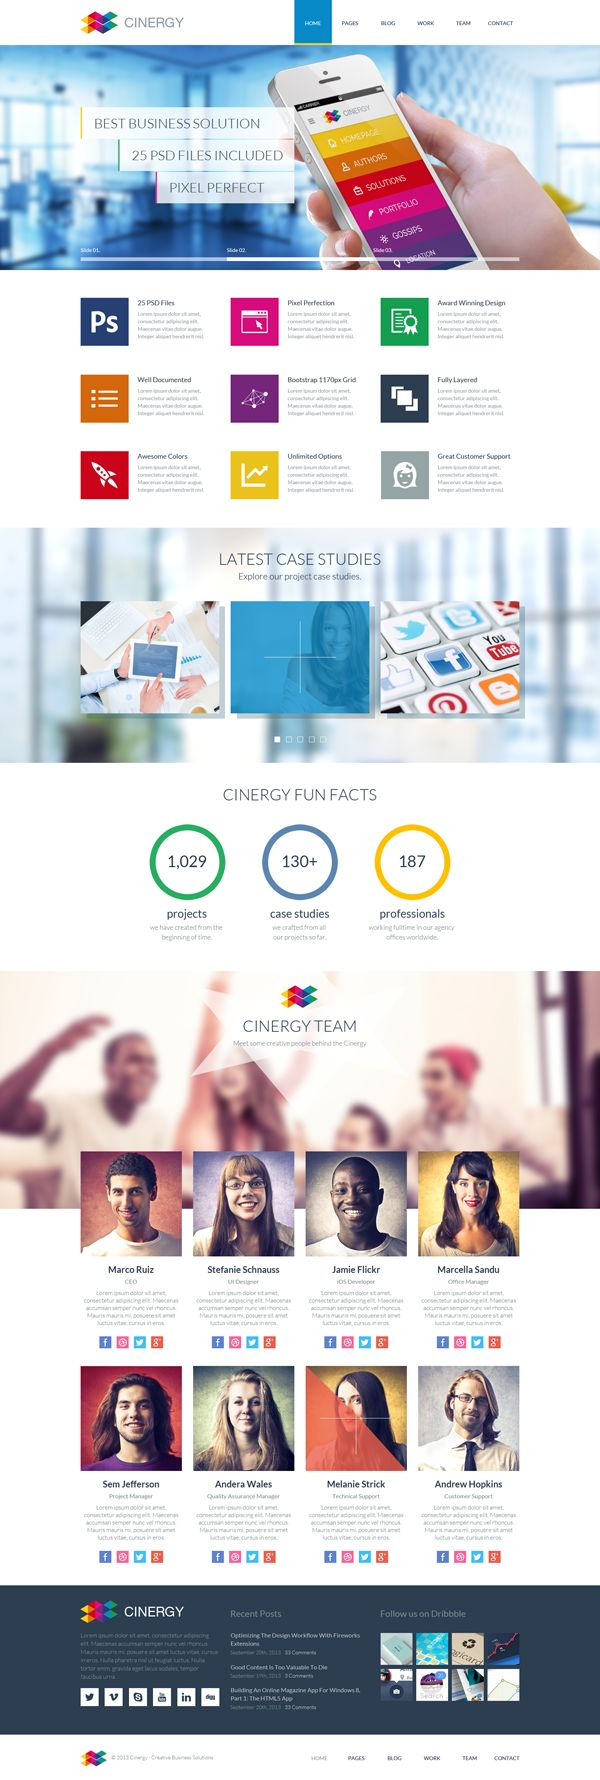 Cinergy - Modern Business HTML Template #responsivetemplates #websitetemplates #html5templates #templates